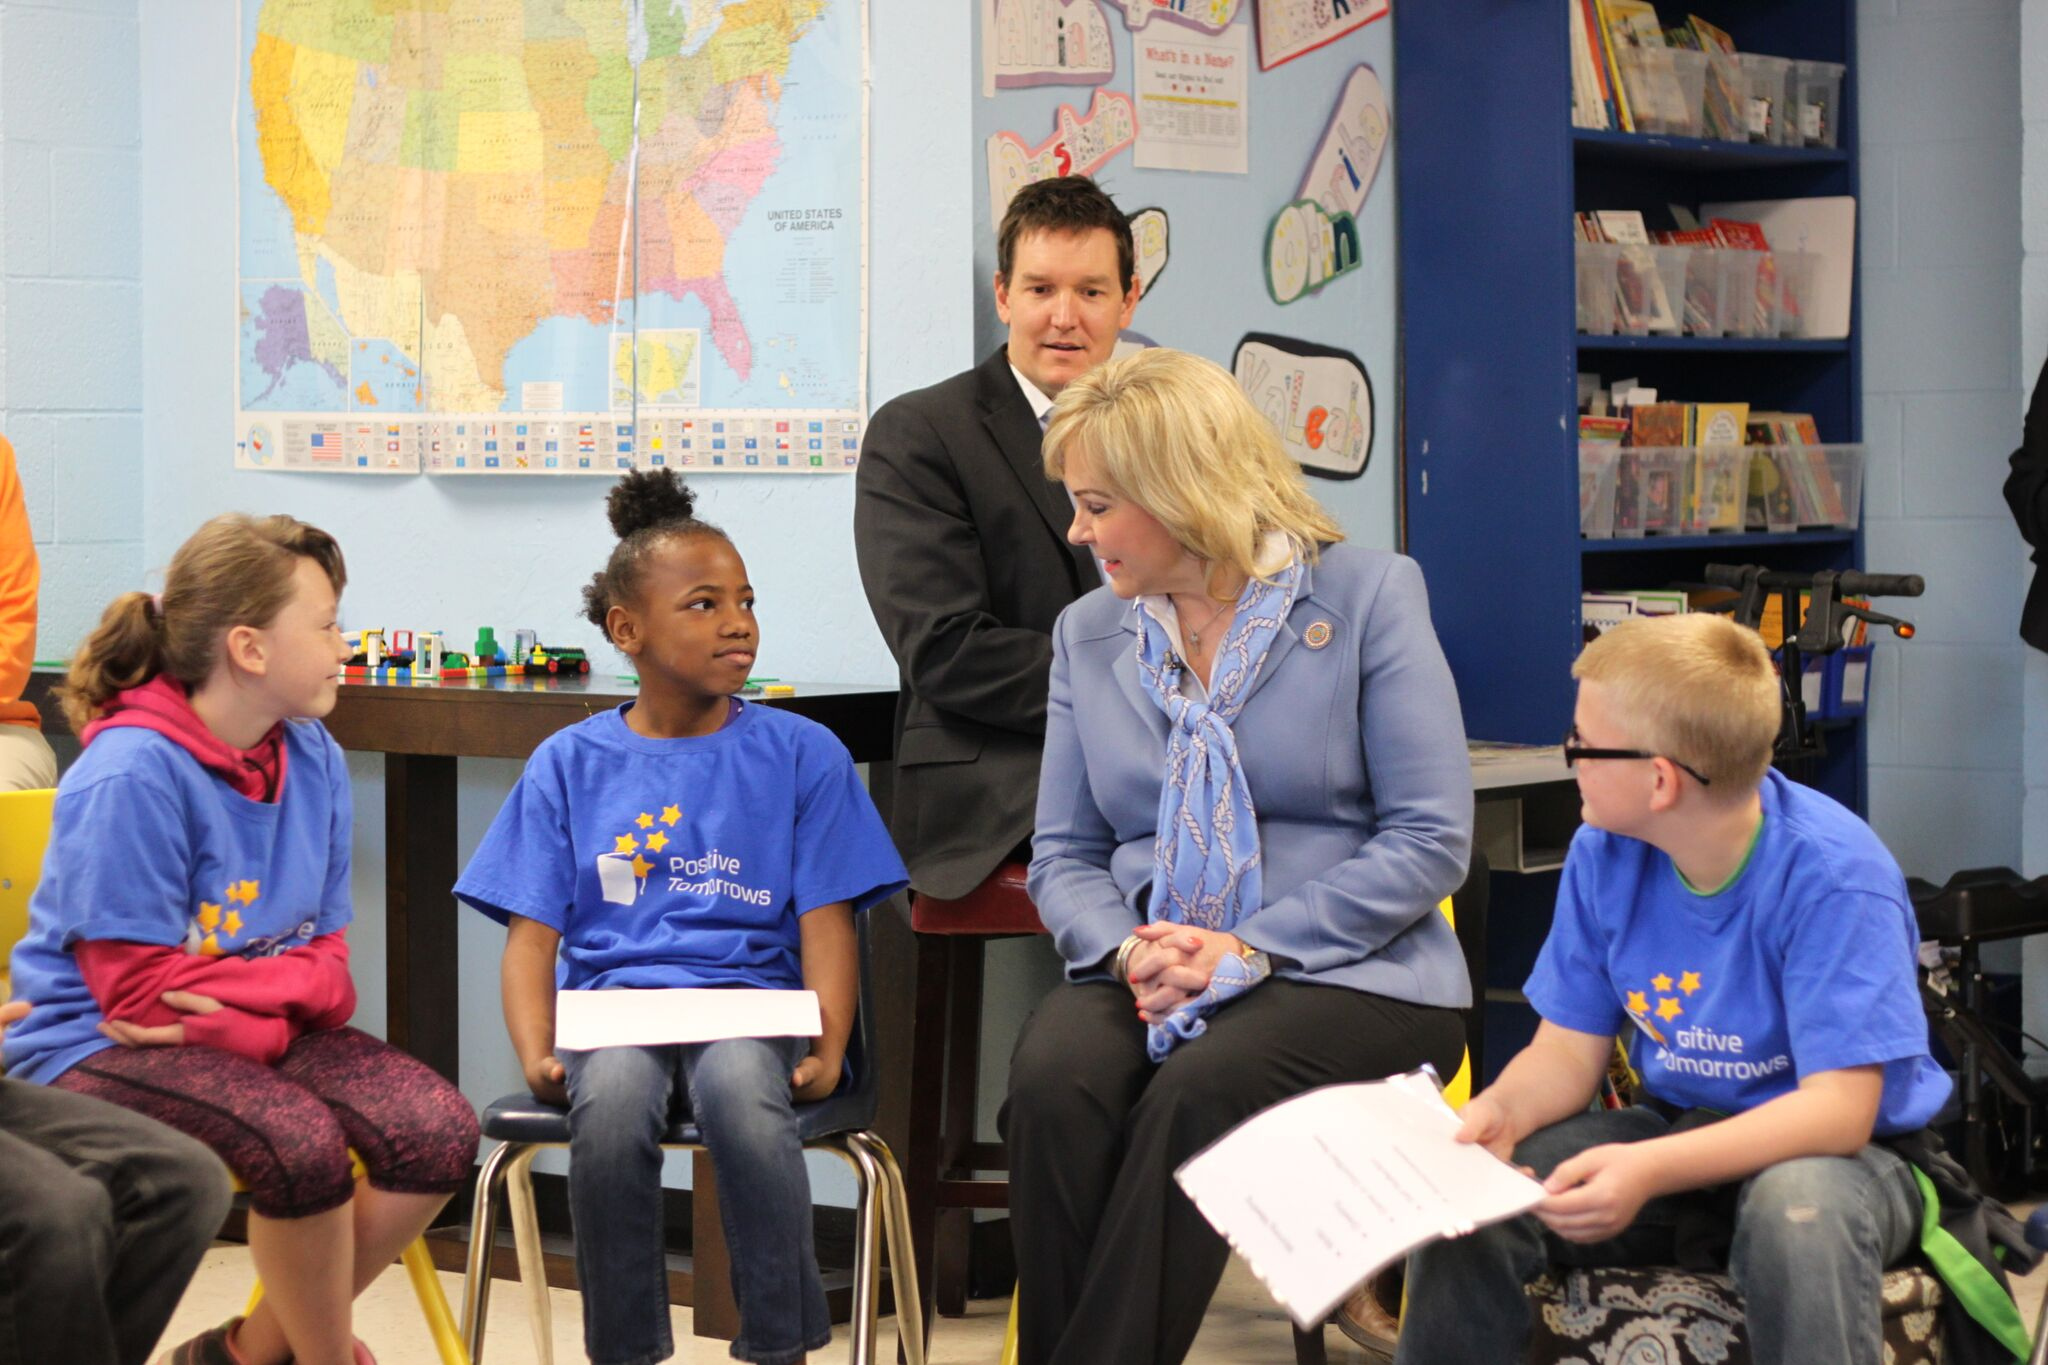 Students at Oklahoma's Positive Tomorrows speak with Governor Fallin